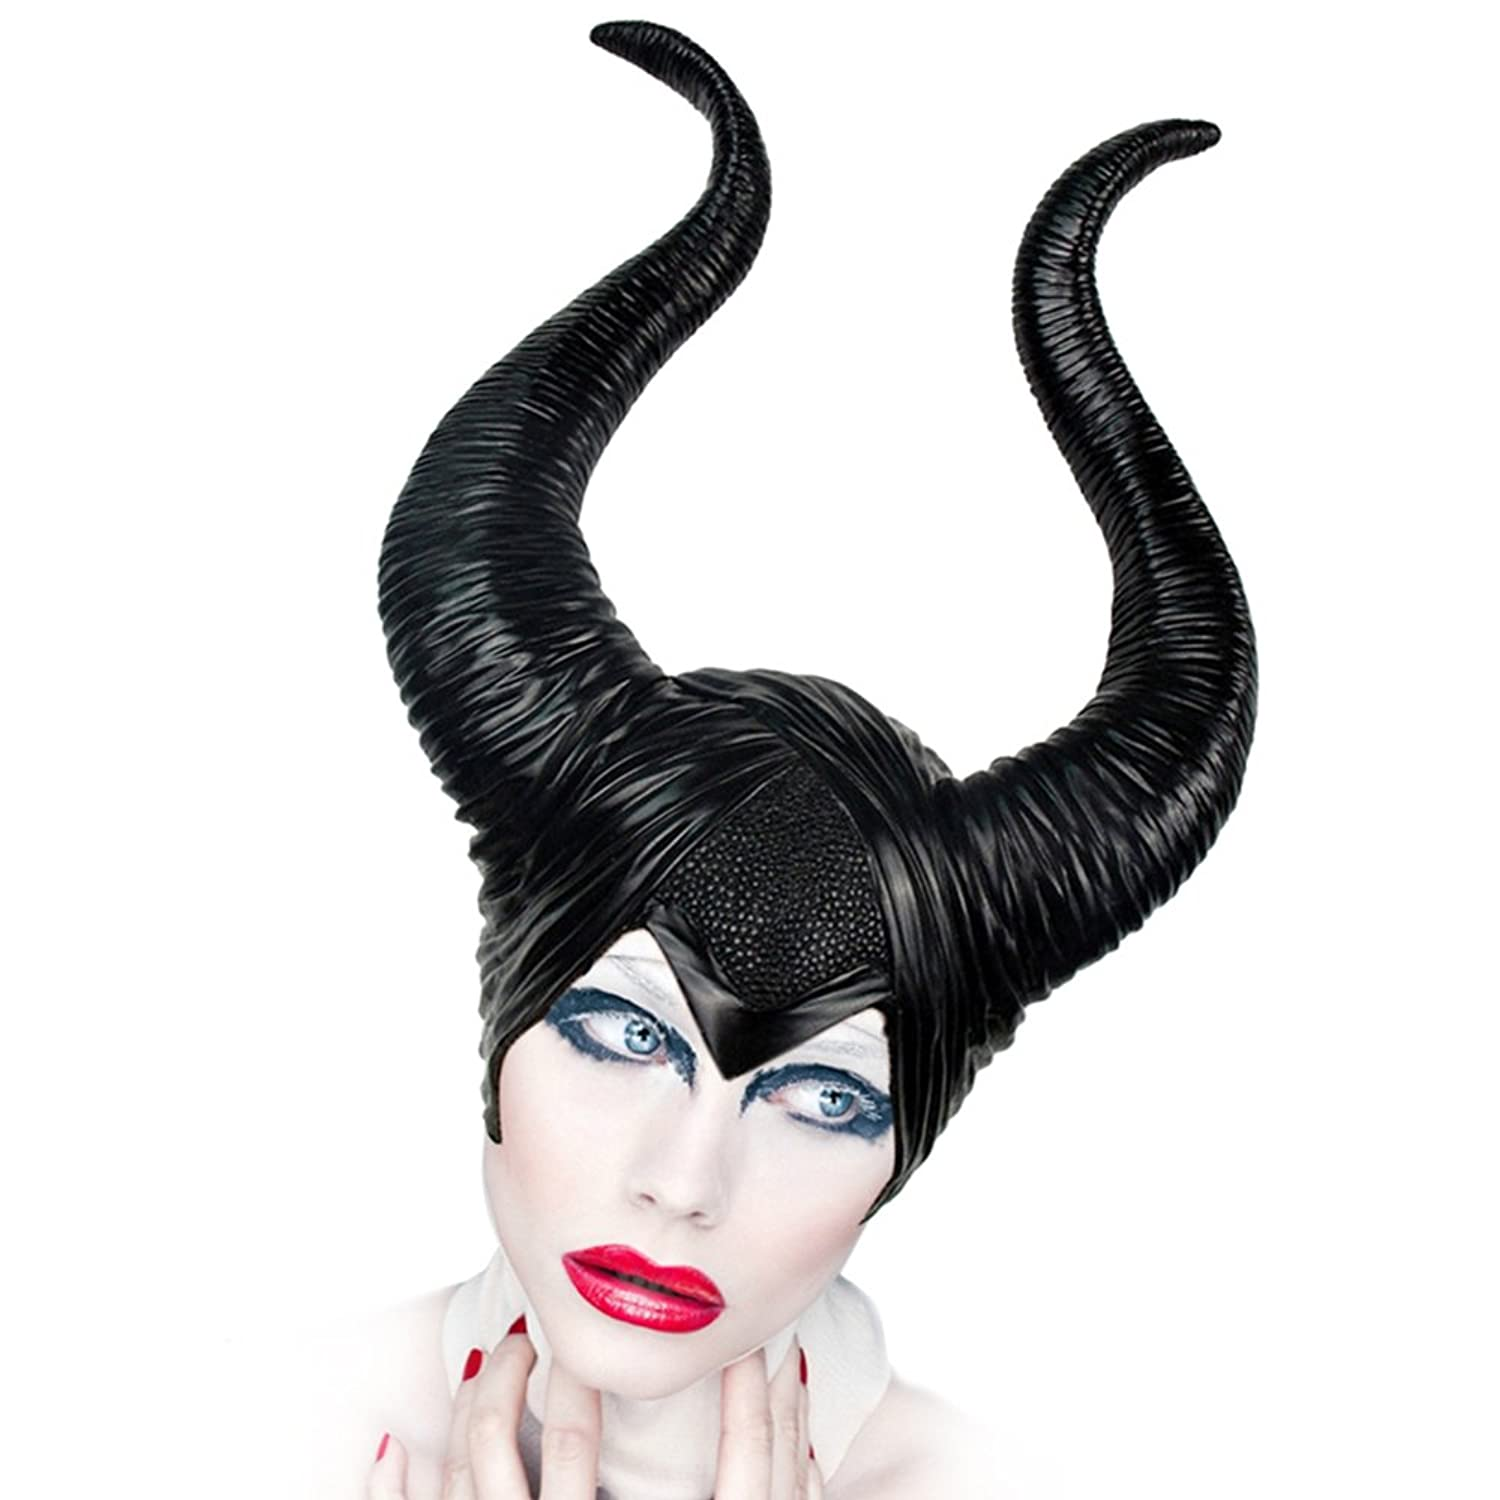 Maleficent Costume Headpiece Halloween Horn is perfect for Masquerade Parties, Gifts, Costume Parties, Carnival, Christmas, Easter, New Years Eve Party, Halloween